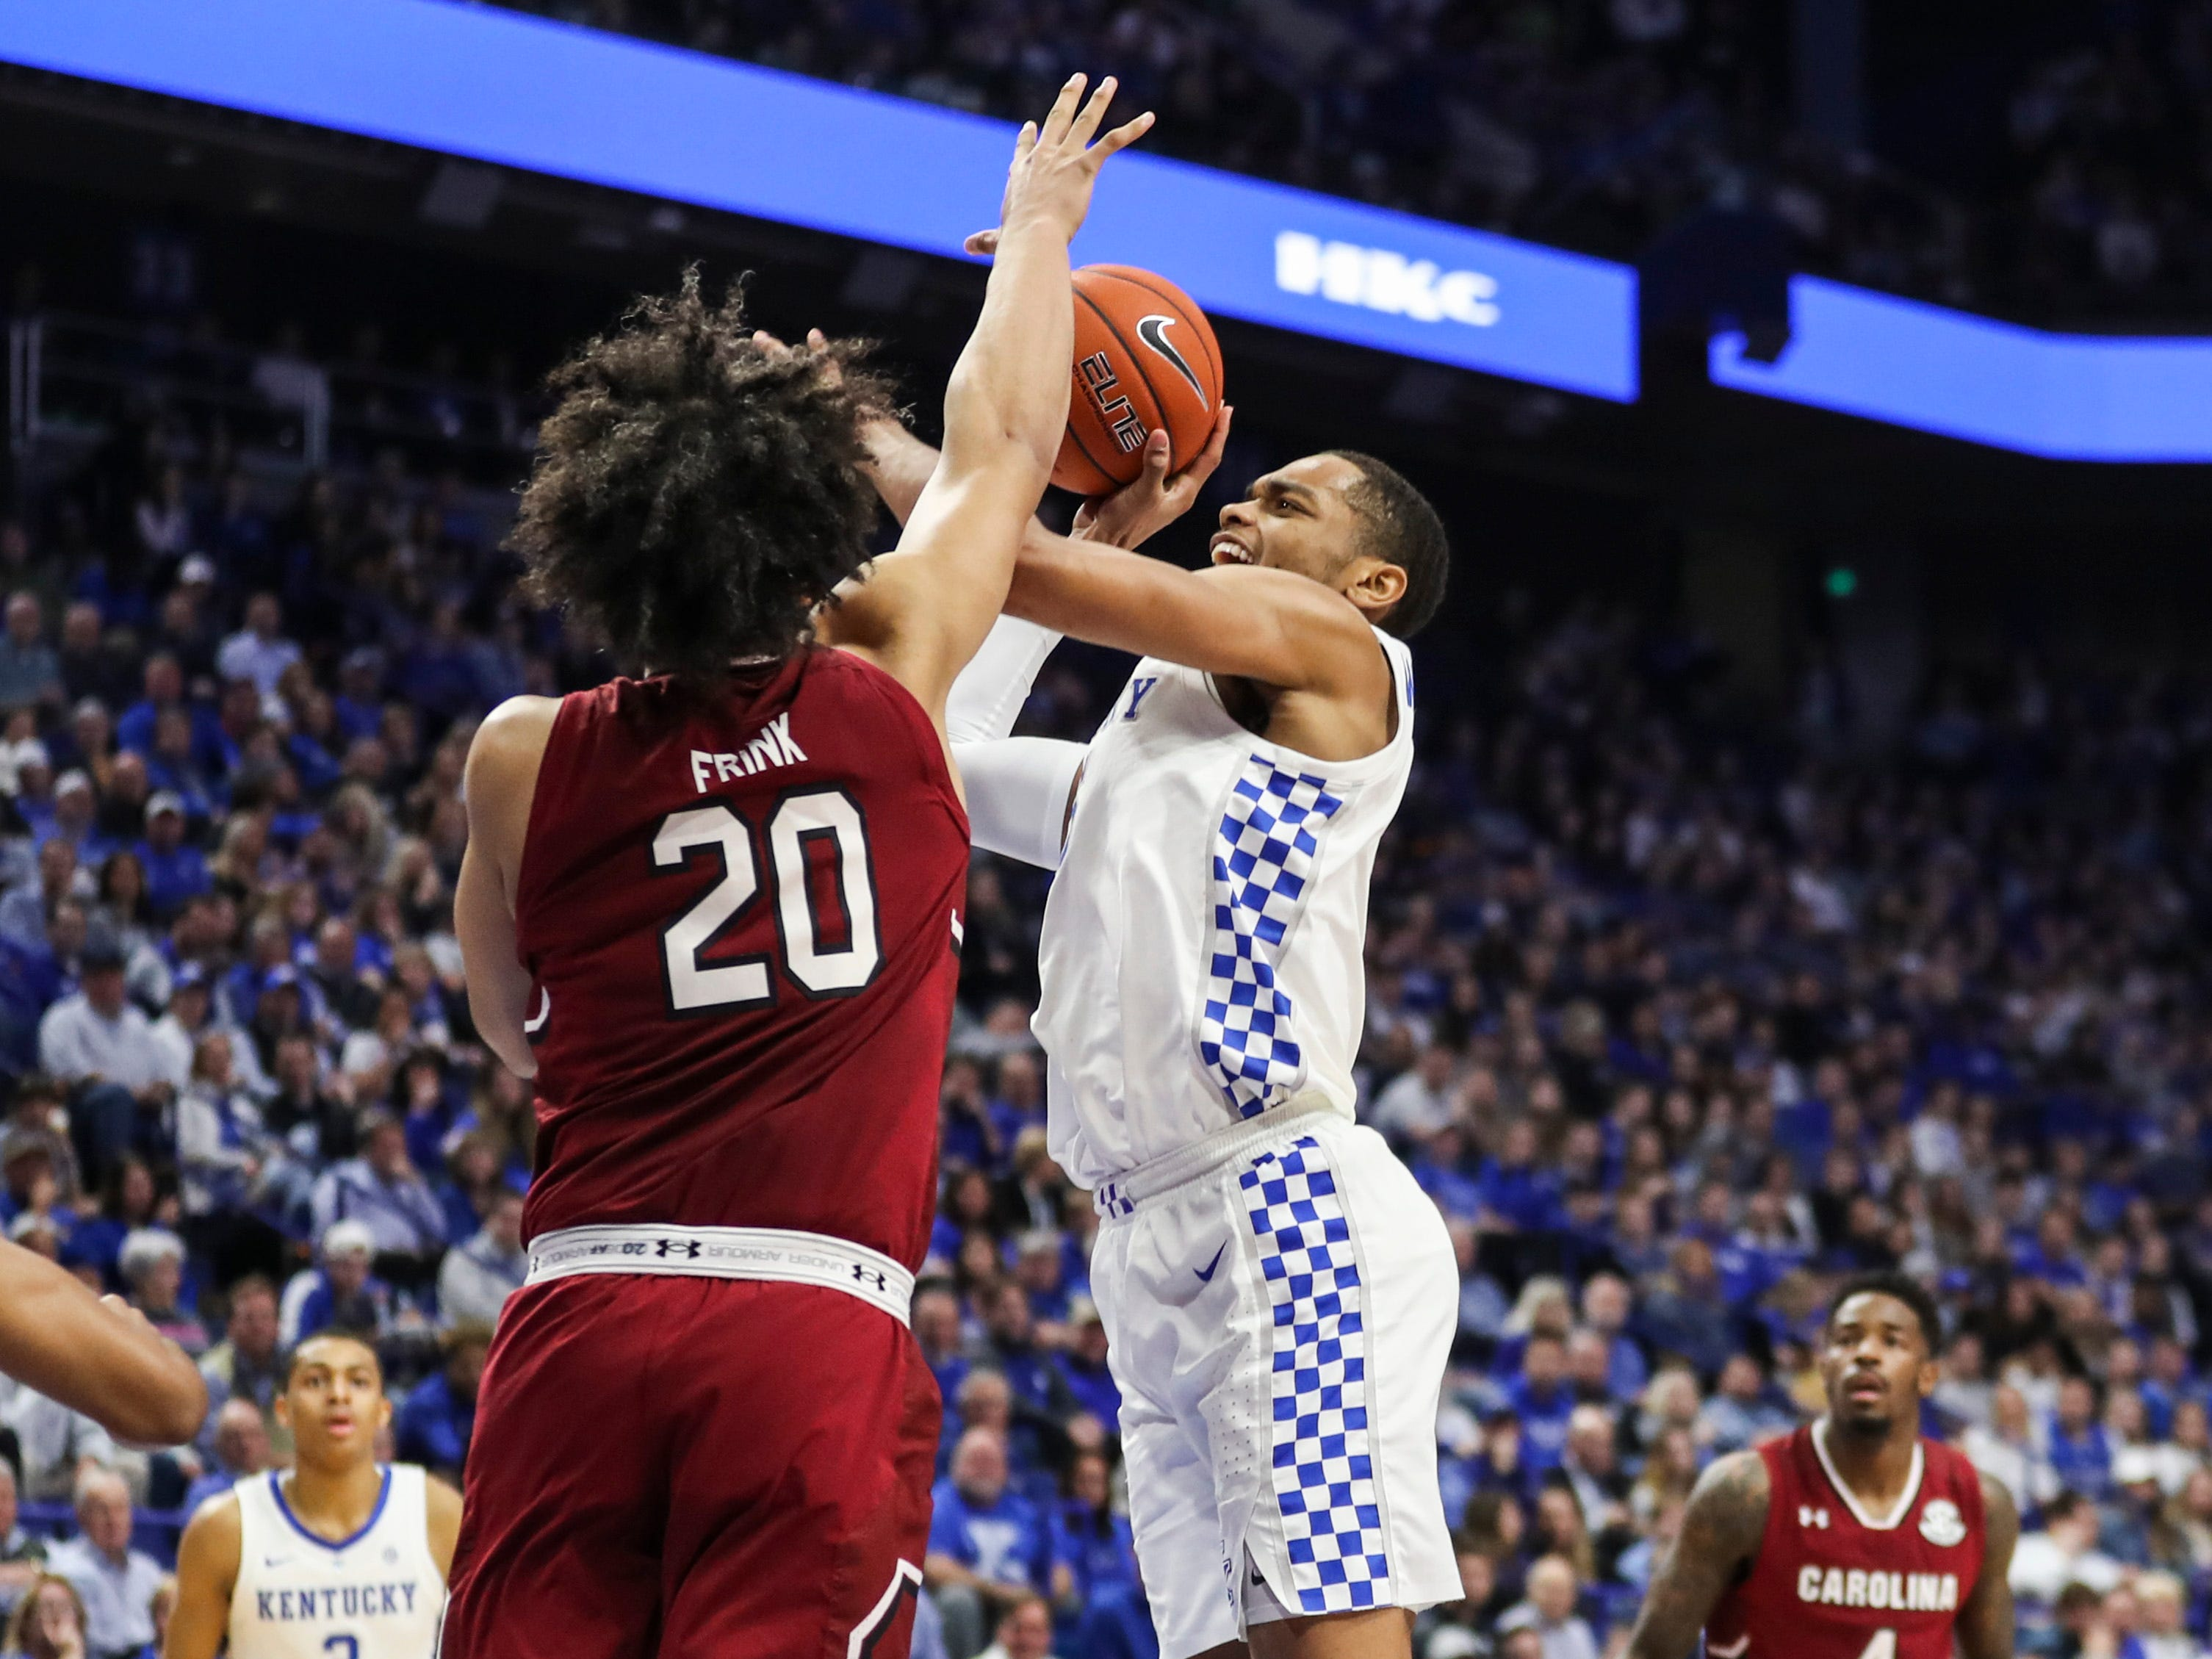 Kentucky's PJ Washington Jr tries to score against South Carolina's Alanzo Frink in the first half Tuesday night at Rupp Arena. Feb. 5, 2019